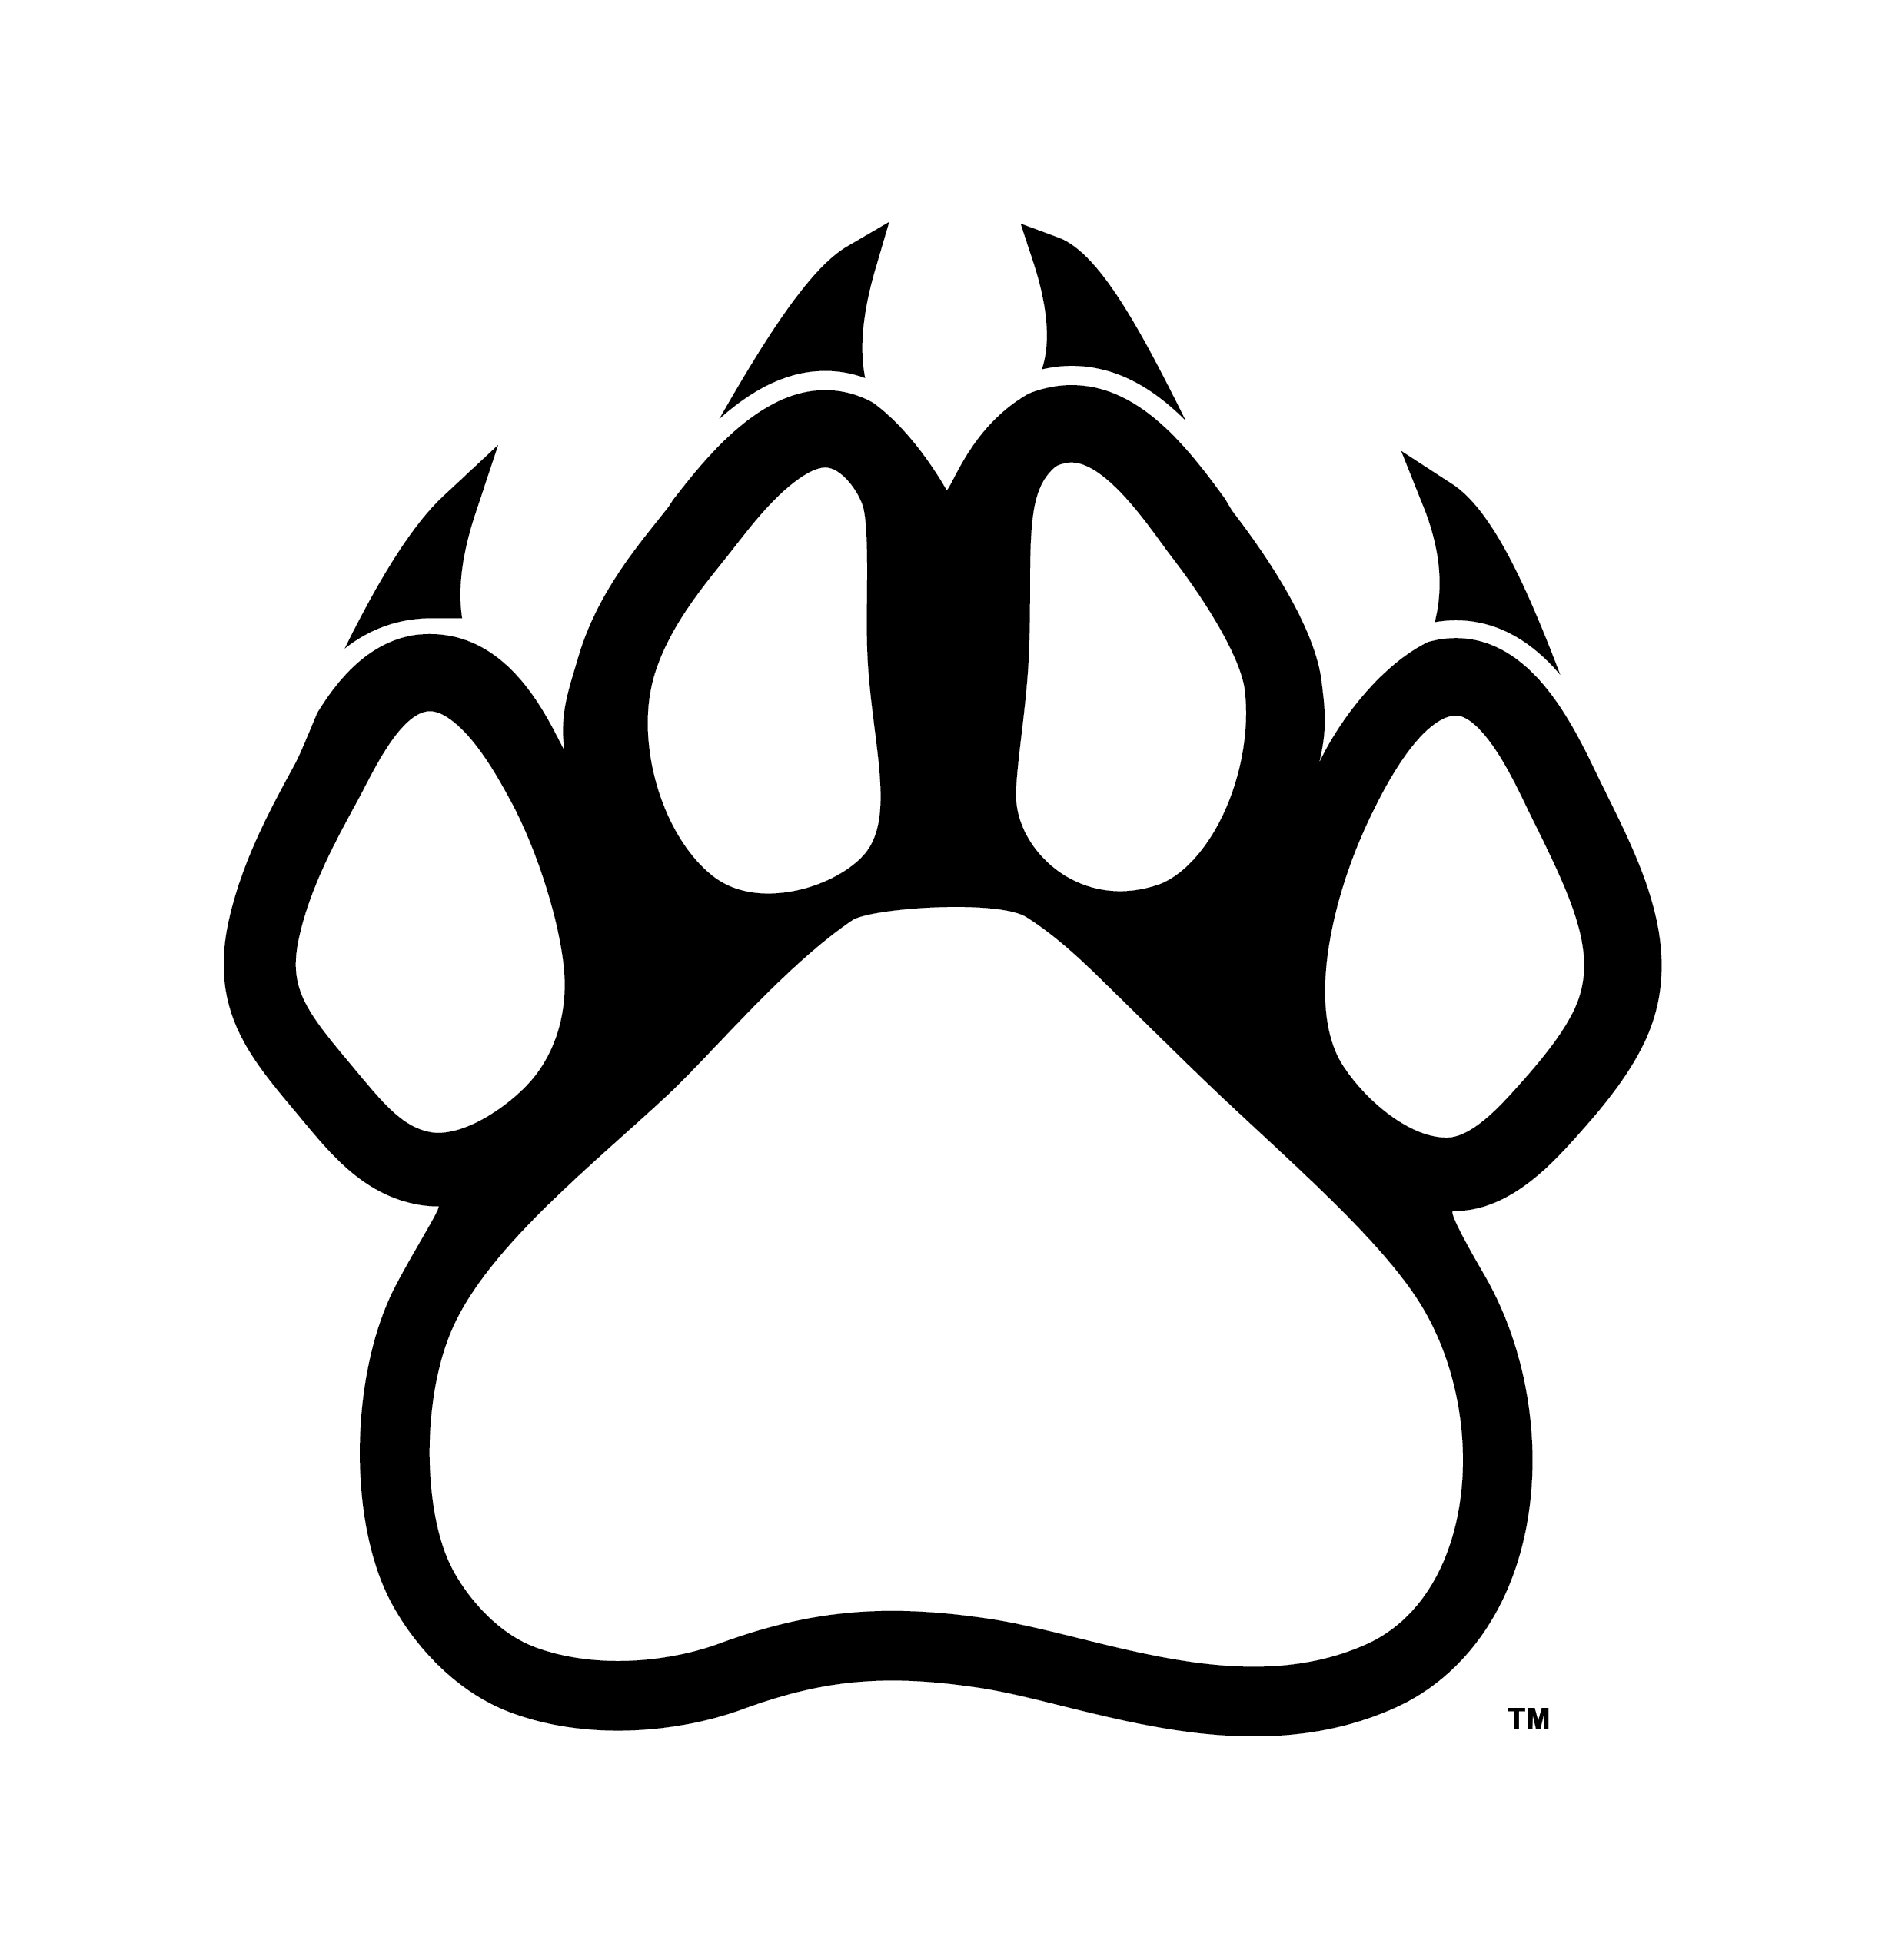 Paw Print Outline Clip Art Cliparts Co.